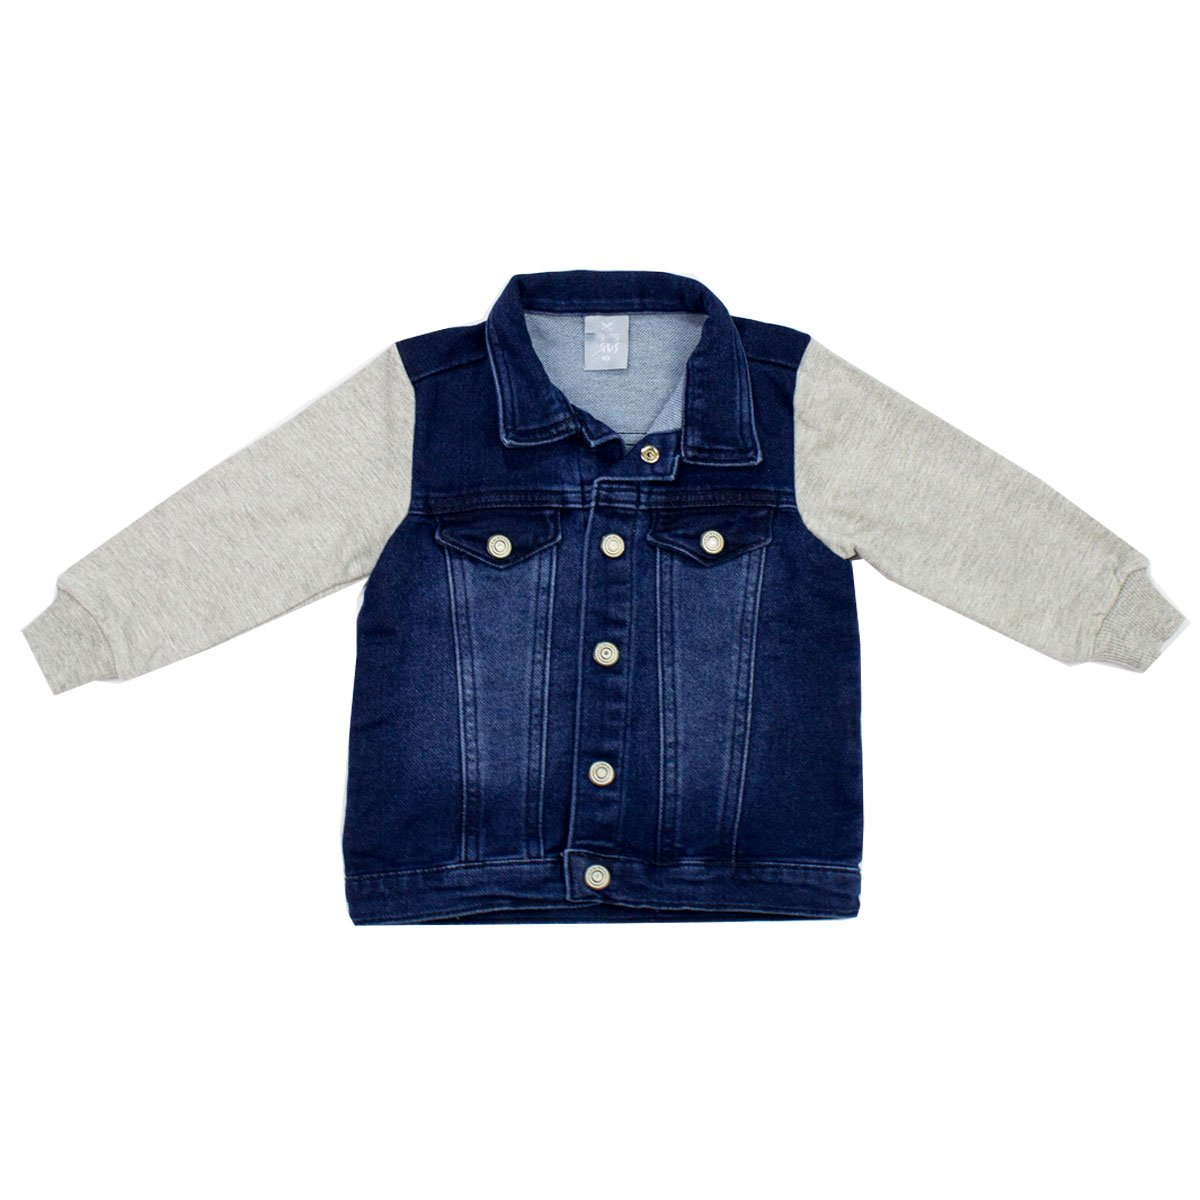 d9b9d8e57 Bizz Store - Jaqueta Jeans Infantil Bebê Hering Kids Moletom